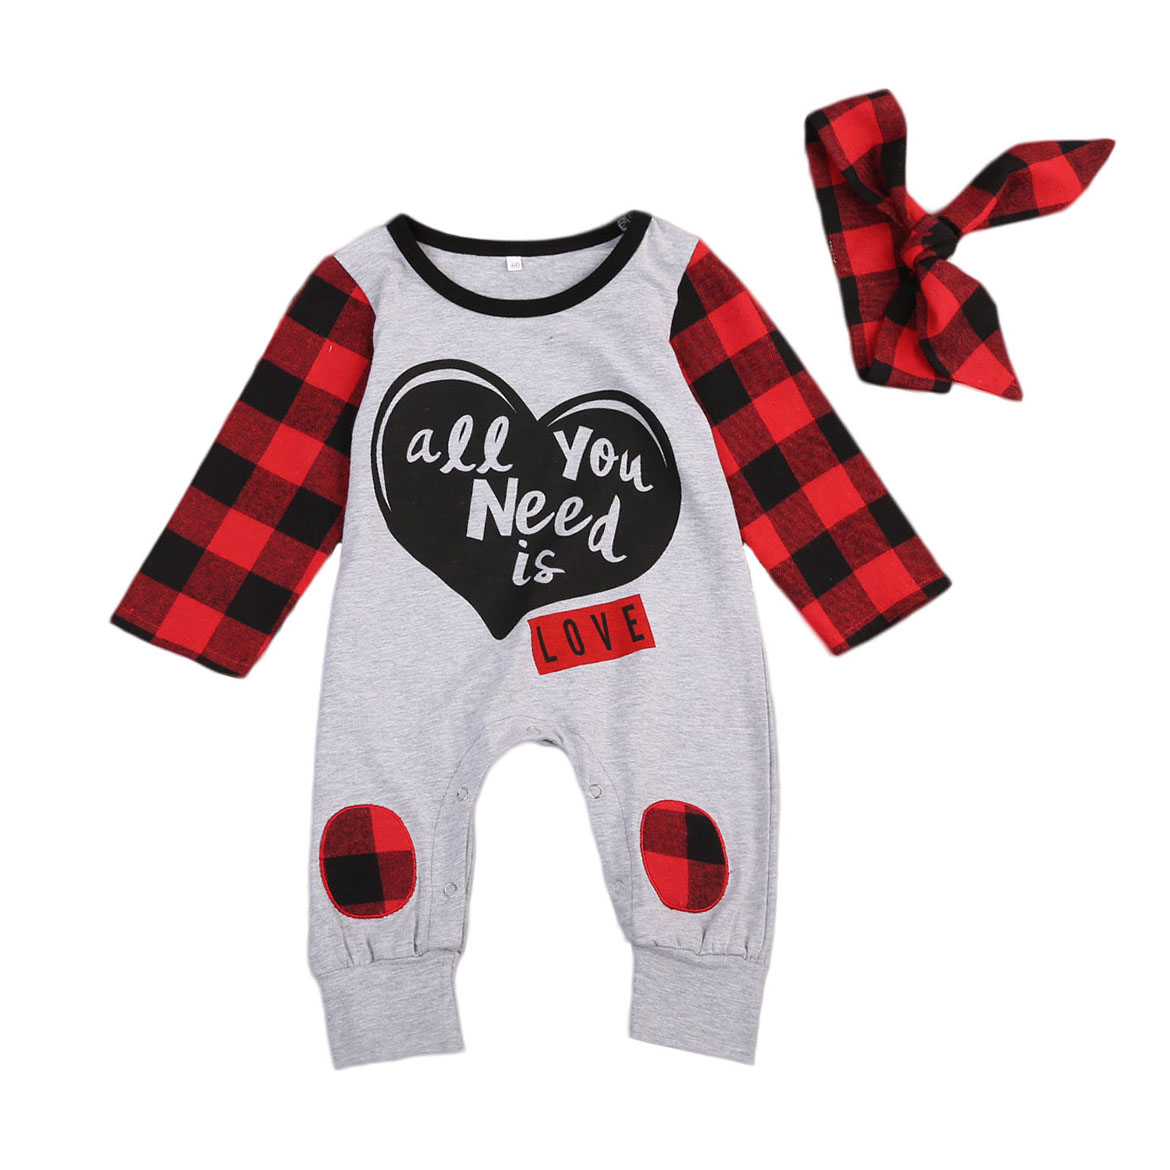 Toddler Infant Baby Boy Girl Clothing Romper Long Sleeve Jumpsuit Headband 2PCs Outfits Clothes Set Baby Girls toddler infant newborn baby boy clothing romper long sleeve black jumpsuit playsuit clothes outfits 0 24m